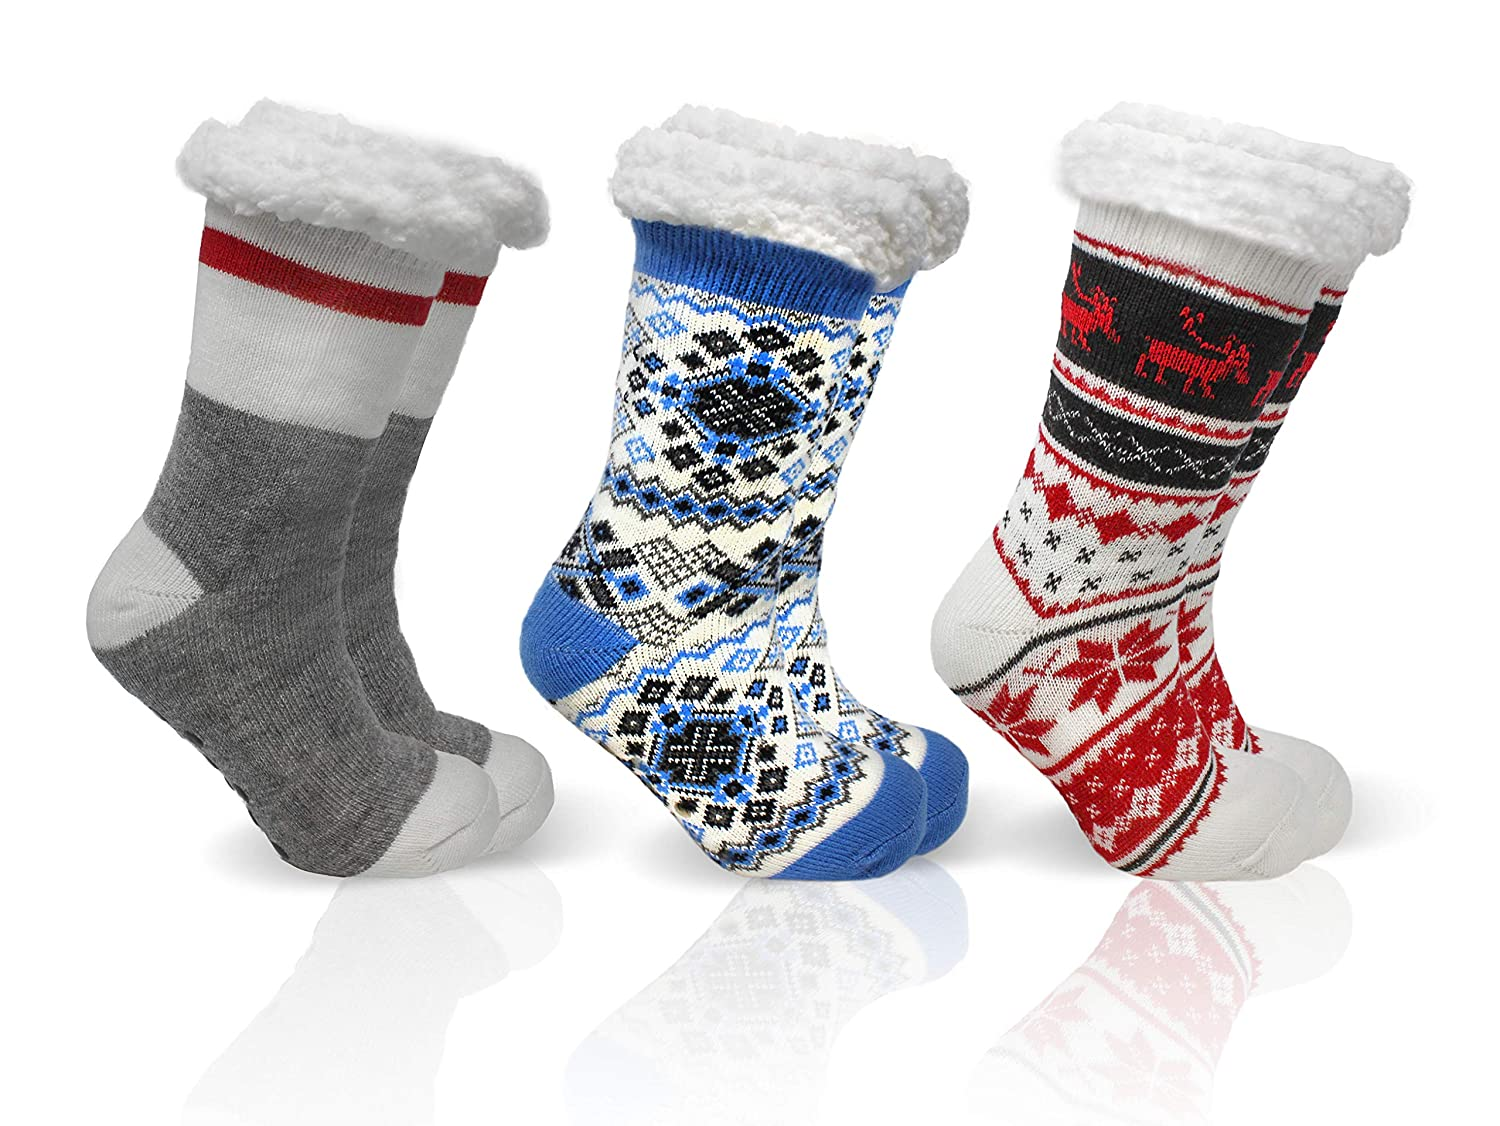 B& CO ApparelCozies (3) Pair Pack Women's Sherpa Lined Slipper Socks with Anti-Skid